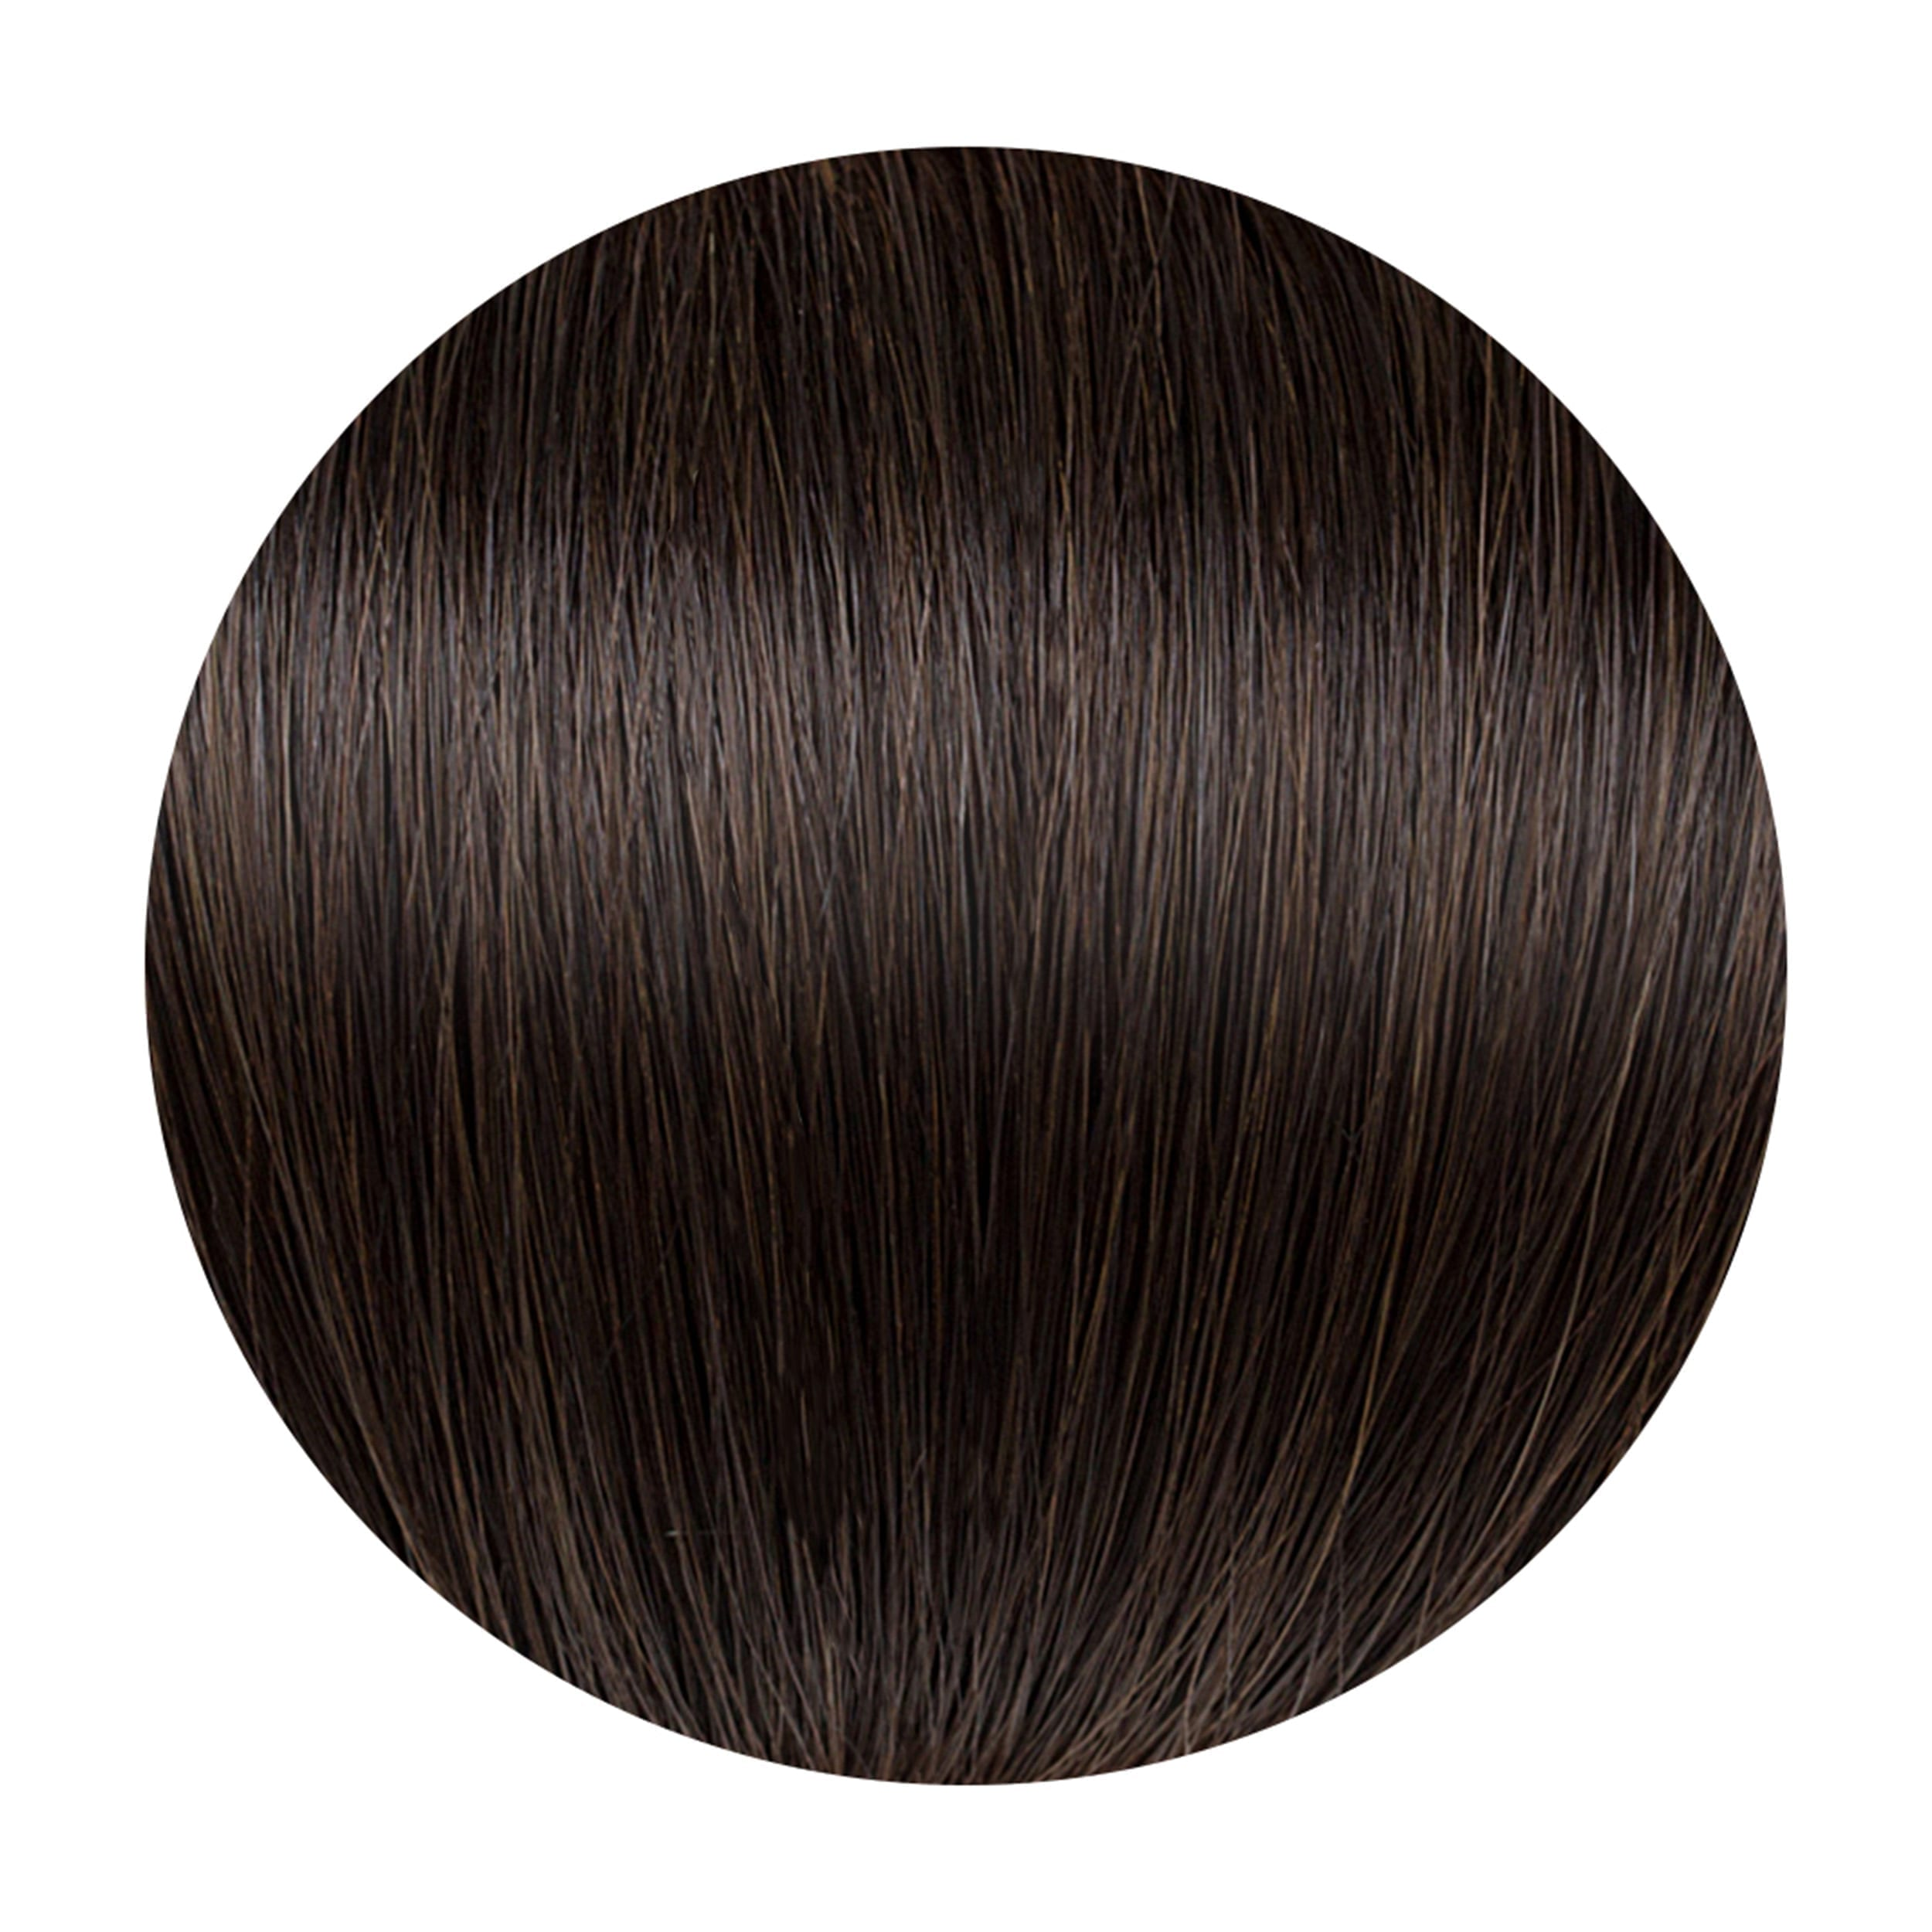 Ritzy Human Hair Extensions Clip in 1 Piece